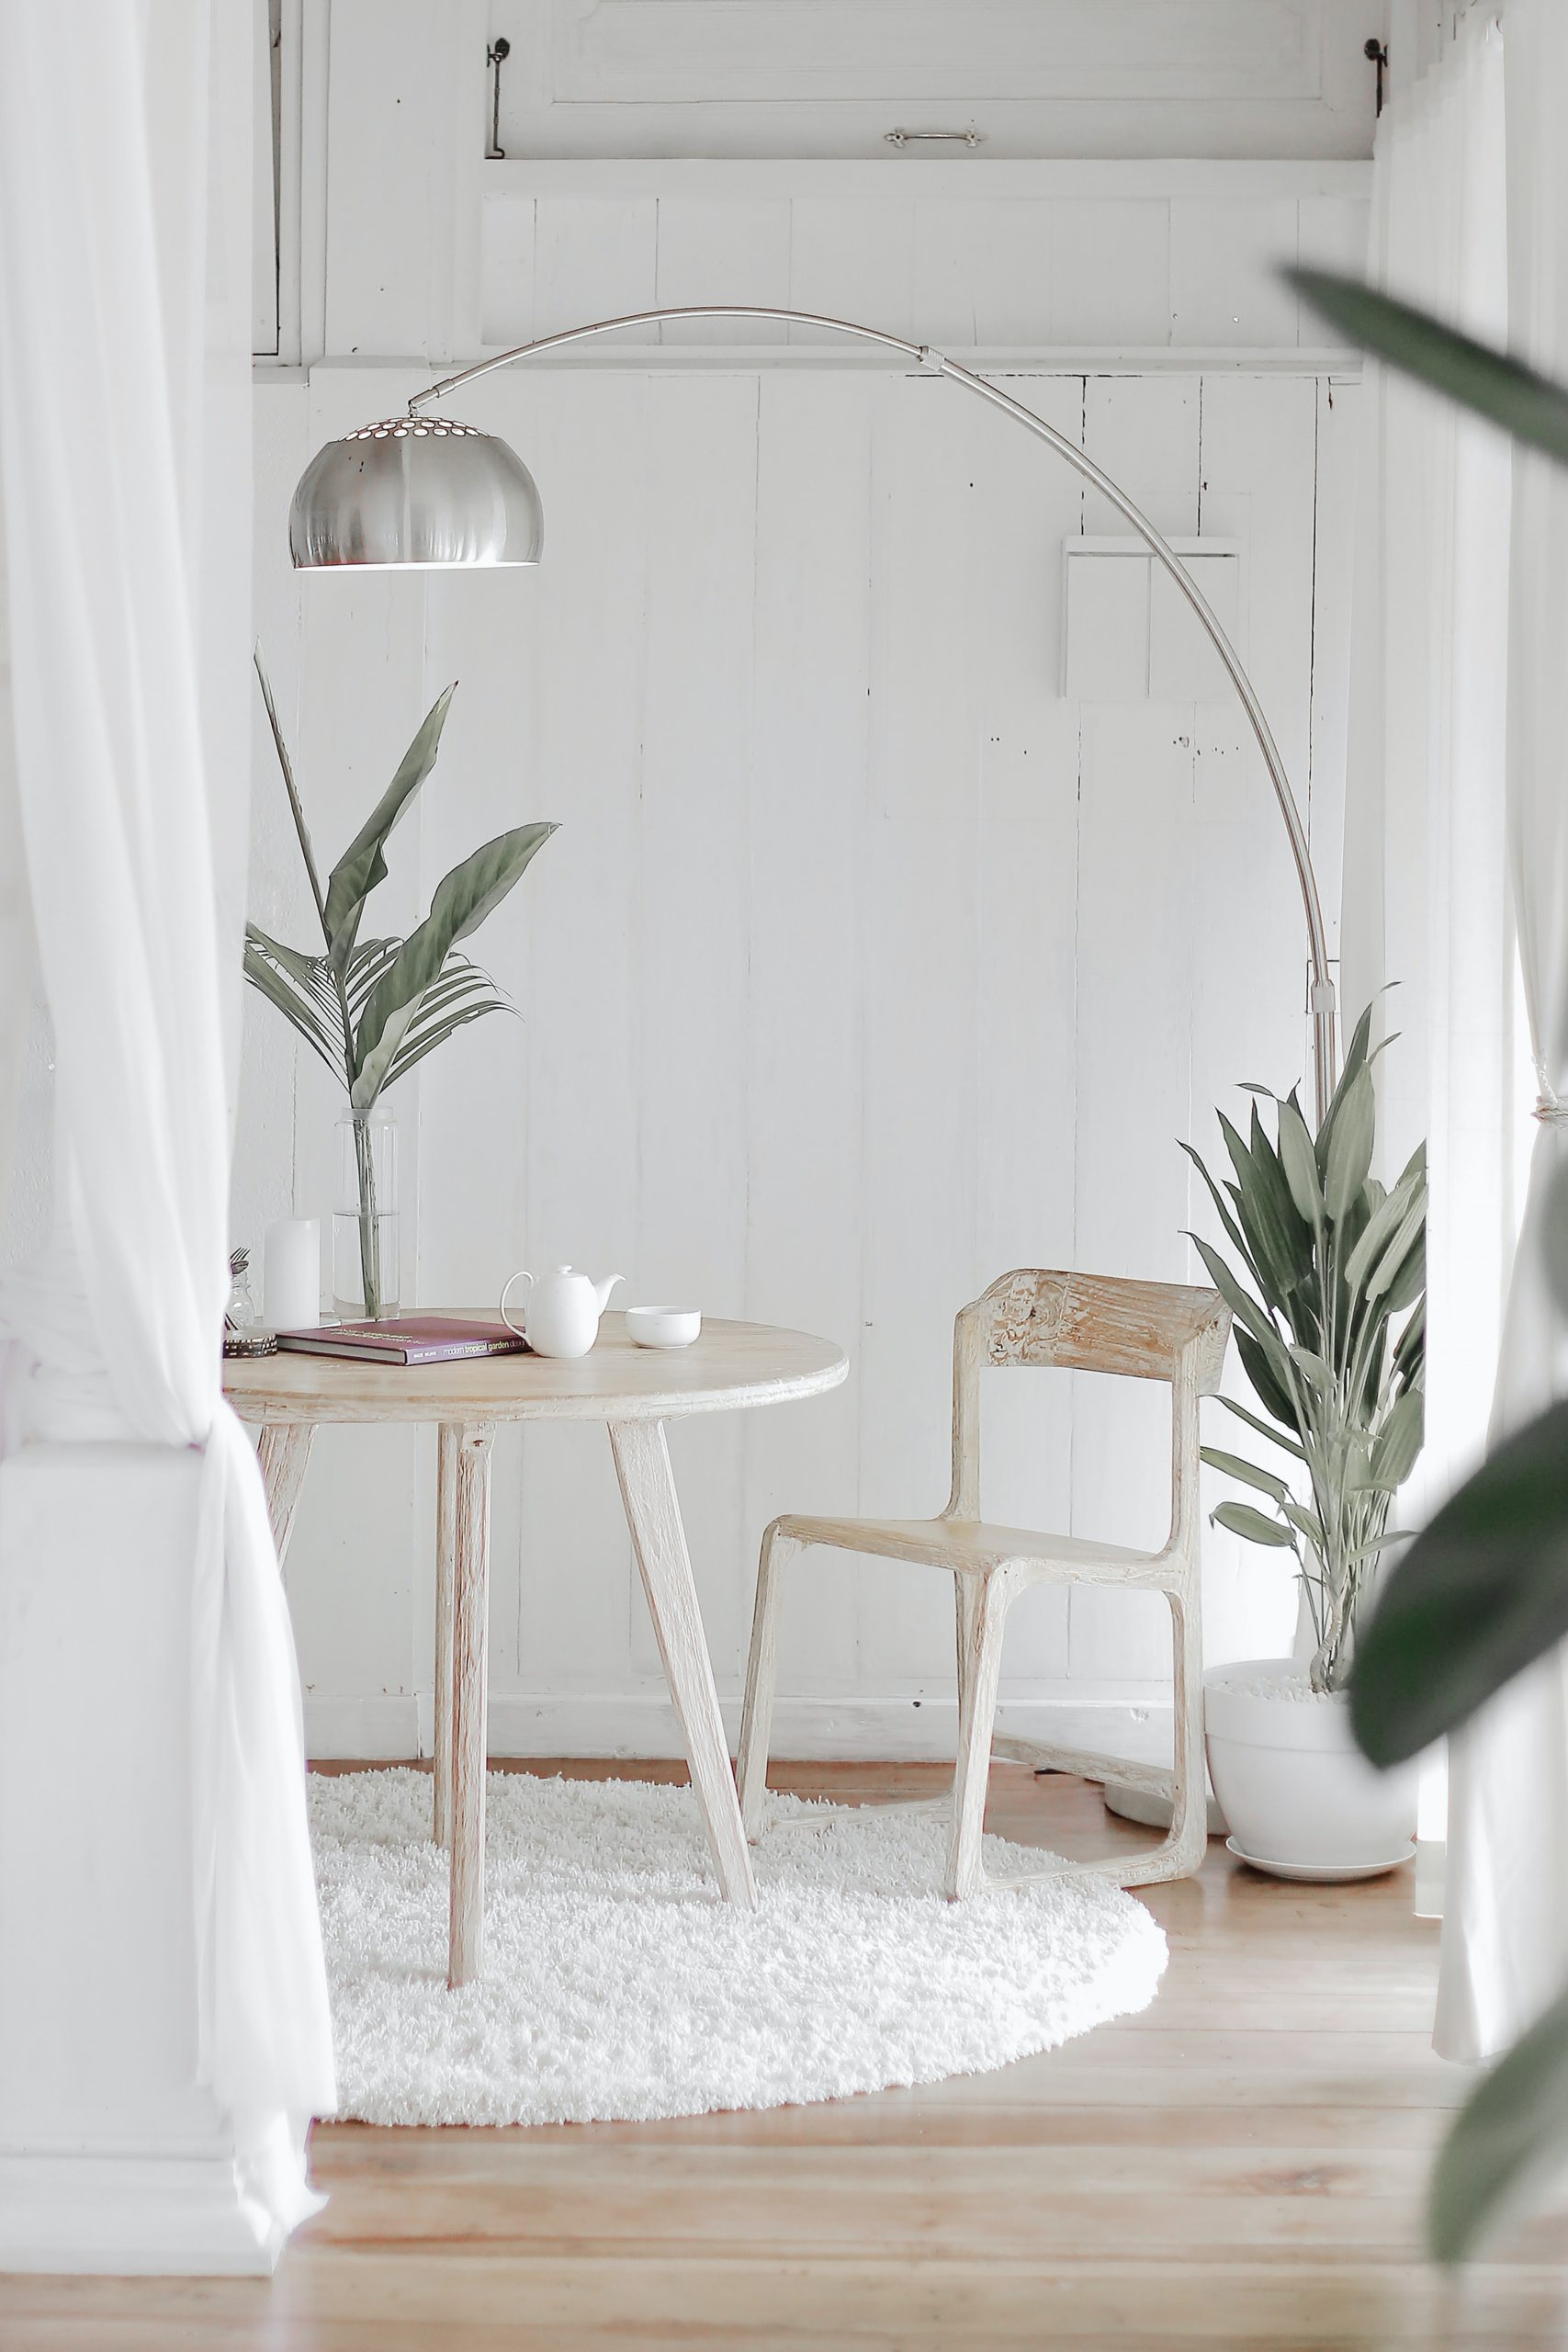 How To Brighten Up Your Home In Three Simple Steps